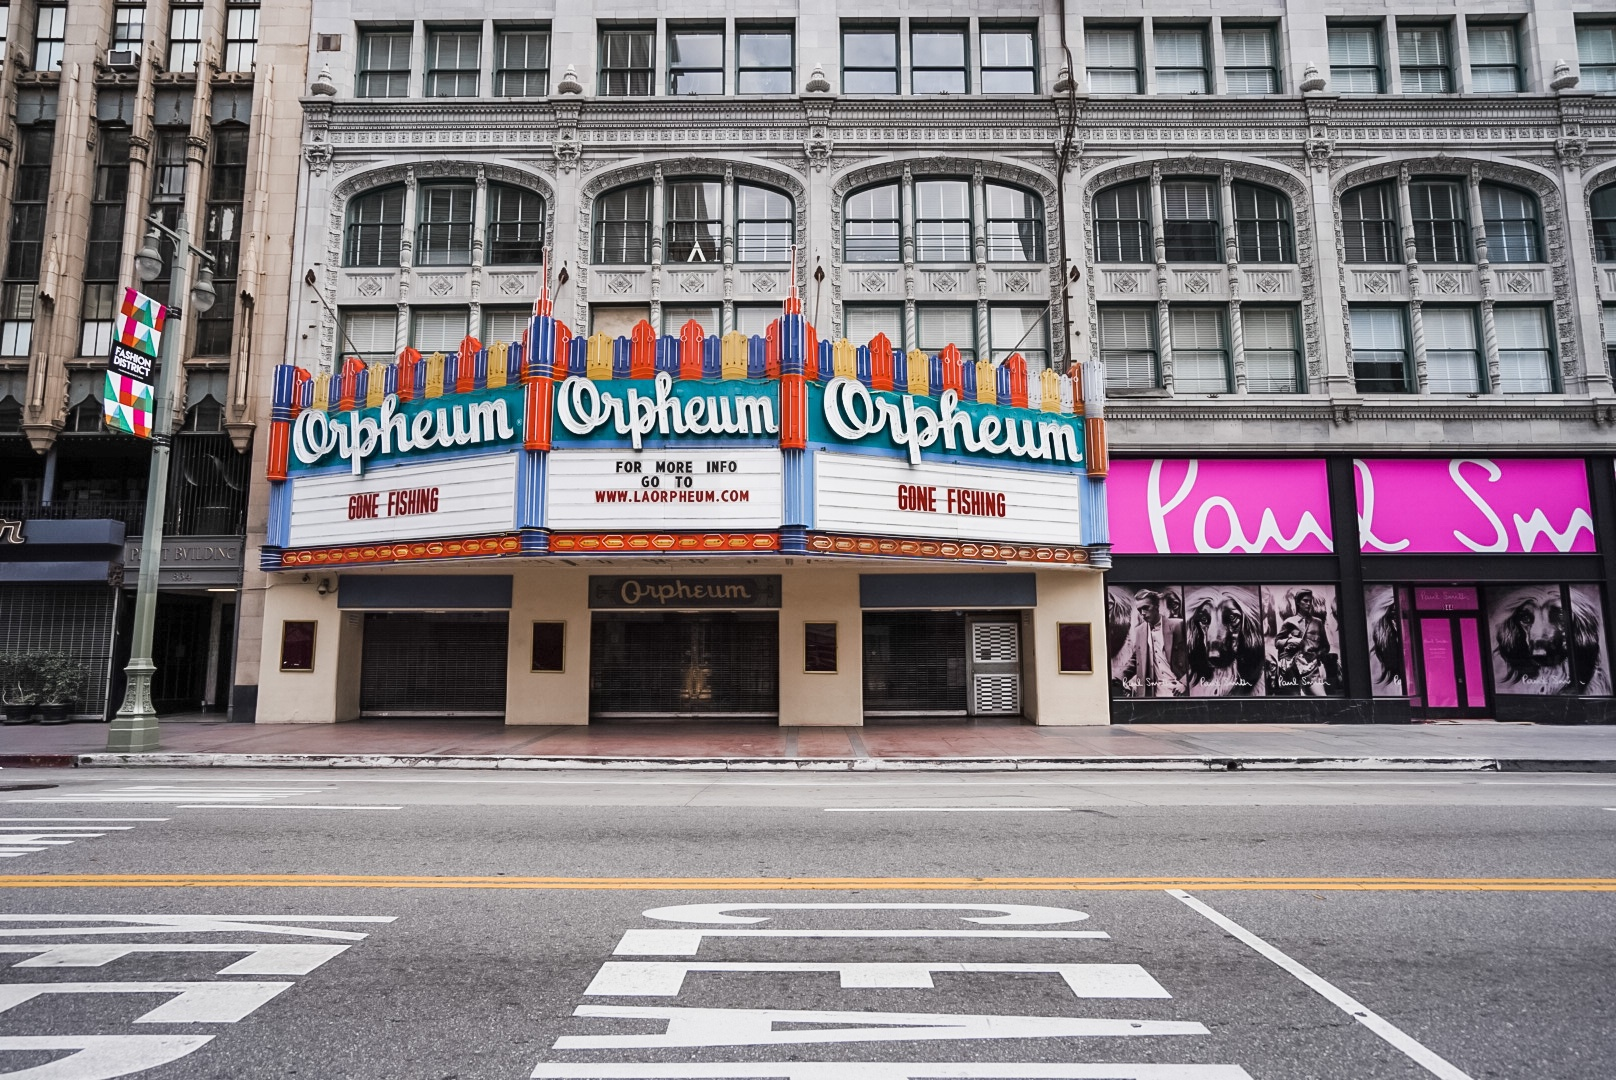 Orpheum theatre marquee reads Gone Fishing.